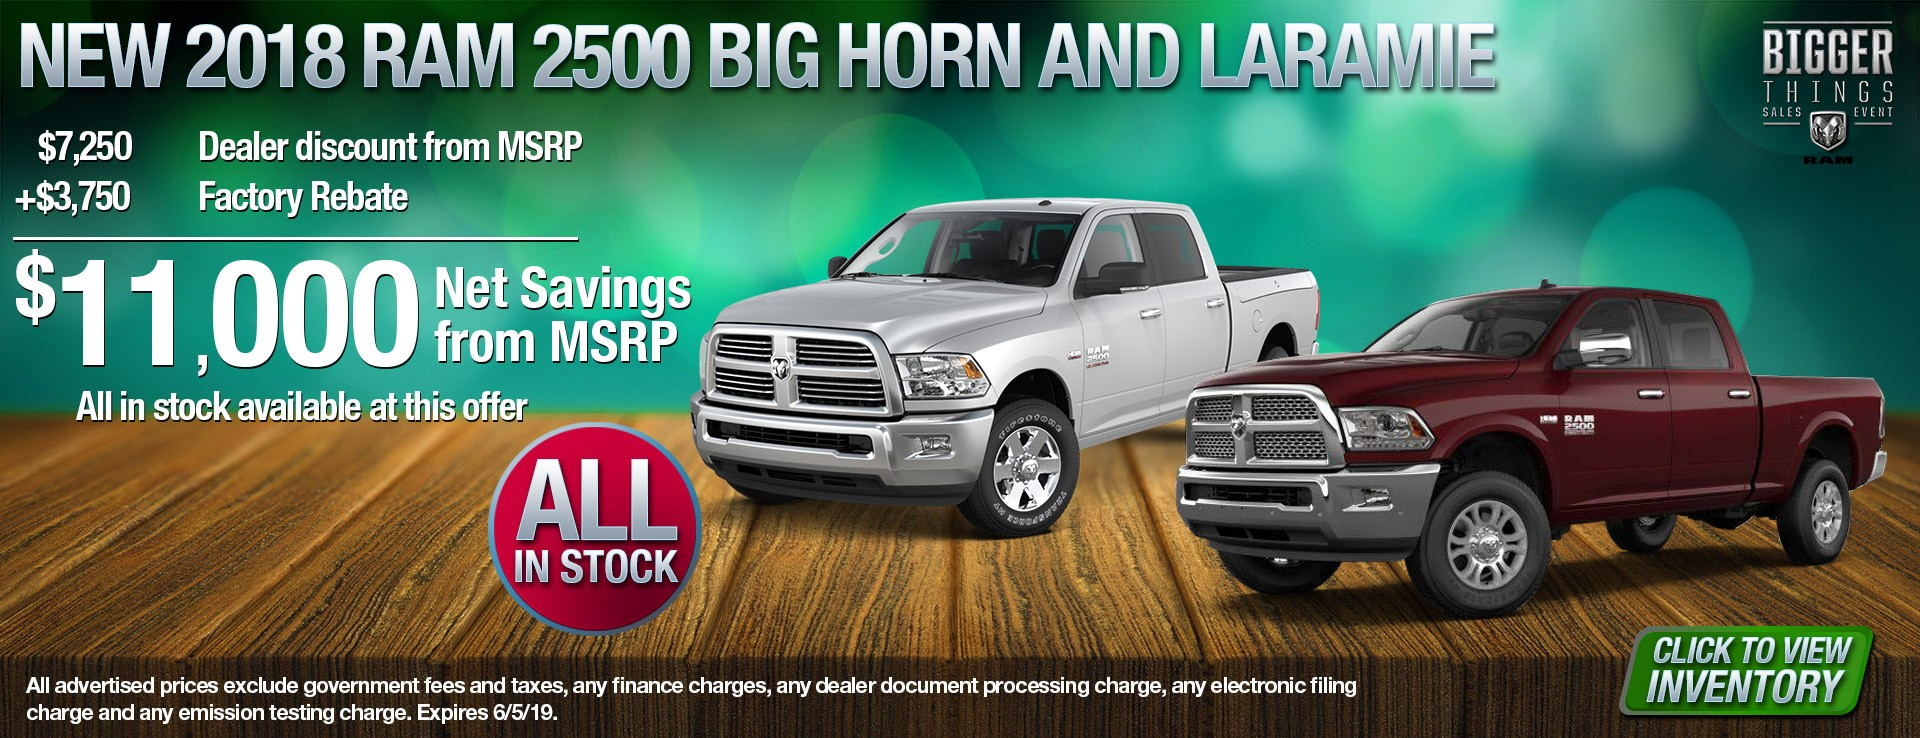 18 RAM 2500 BH and Laramie